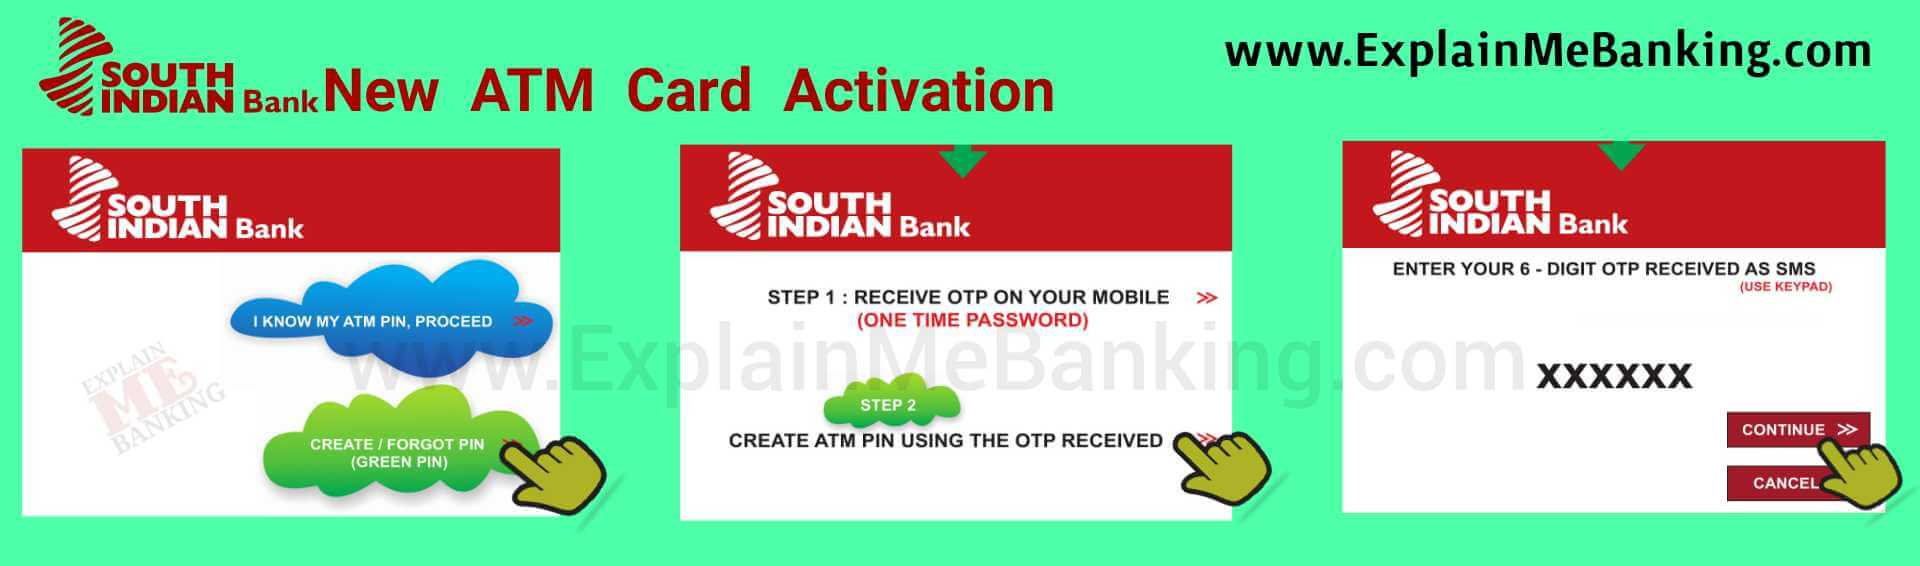 South Indian Bank New ATM Card Activation